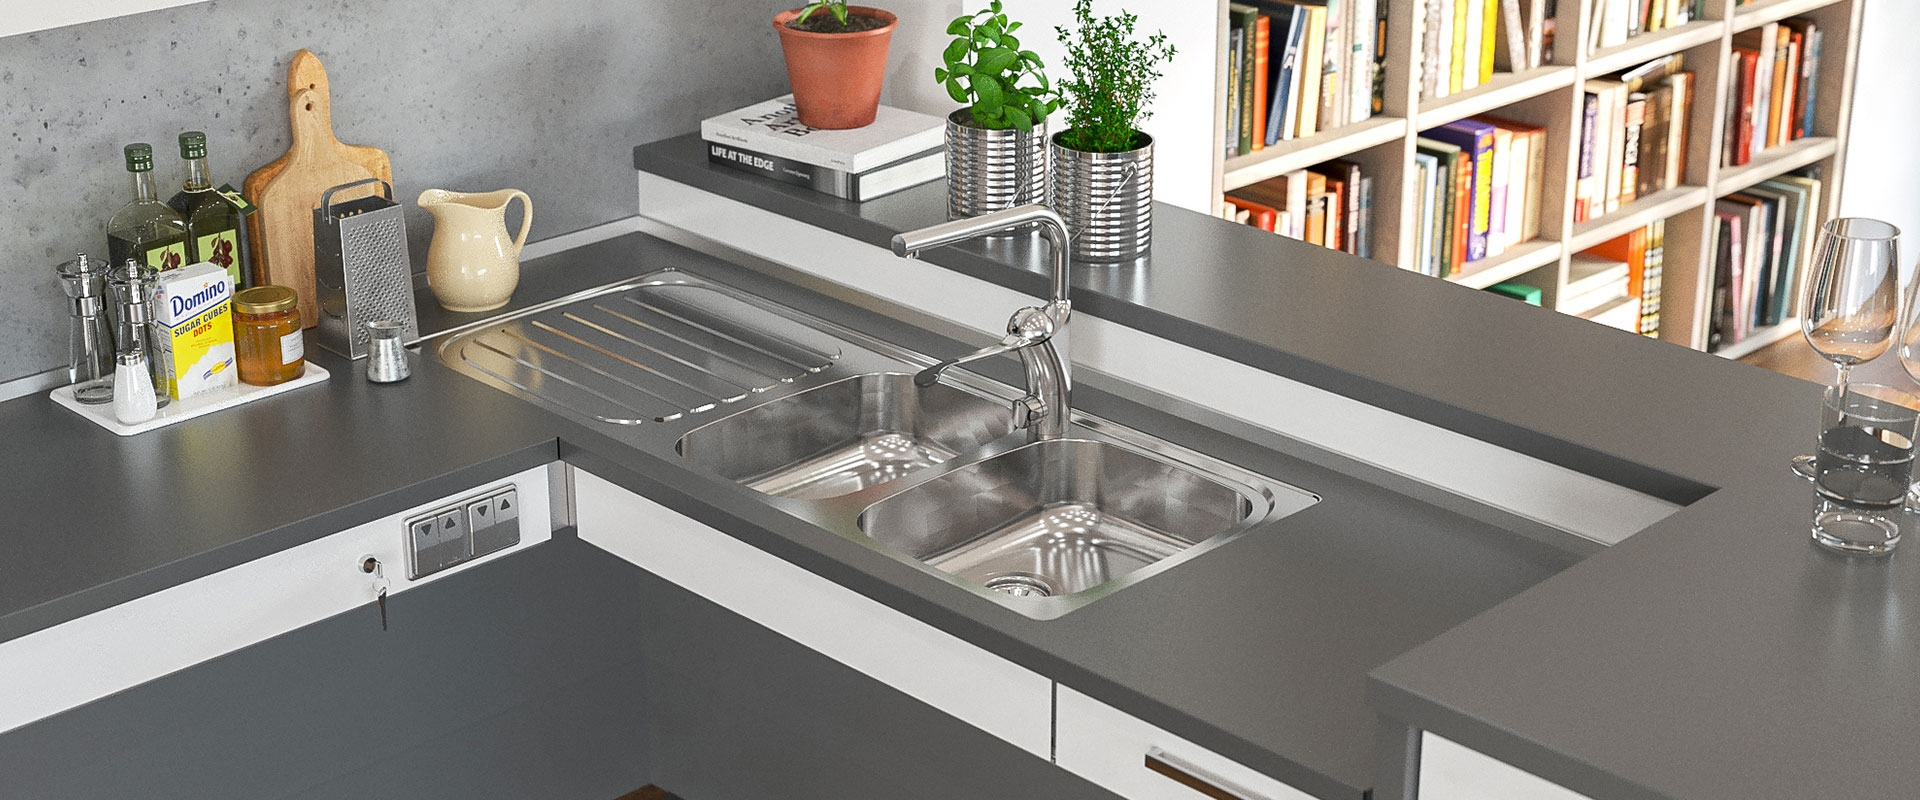 Inset Kitchen Sink ES35 - 120.6 cm